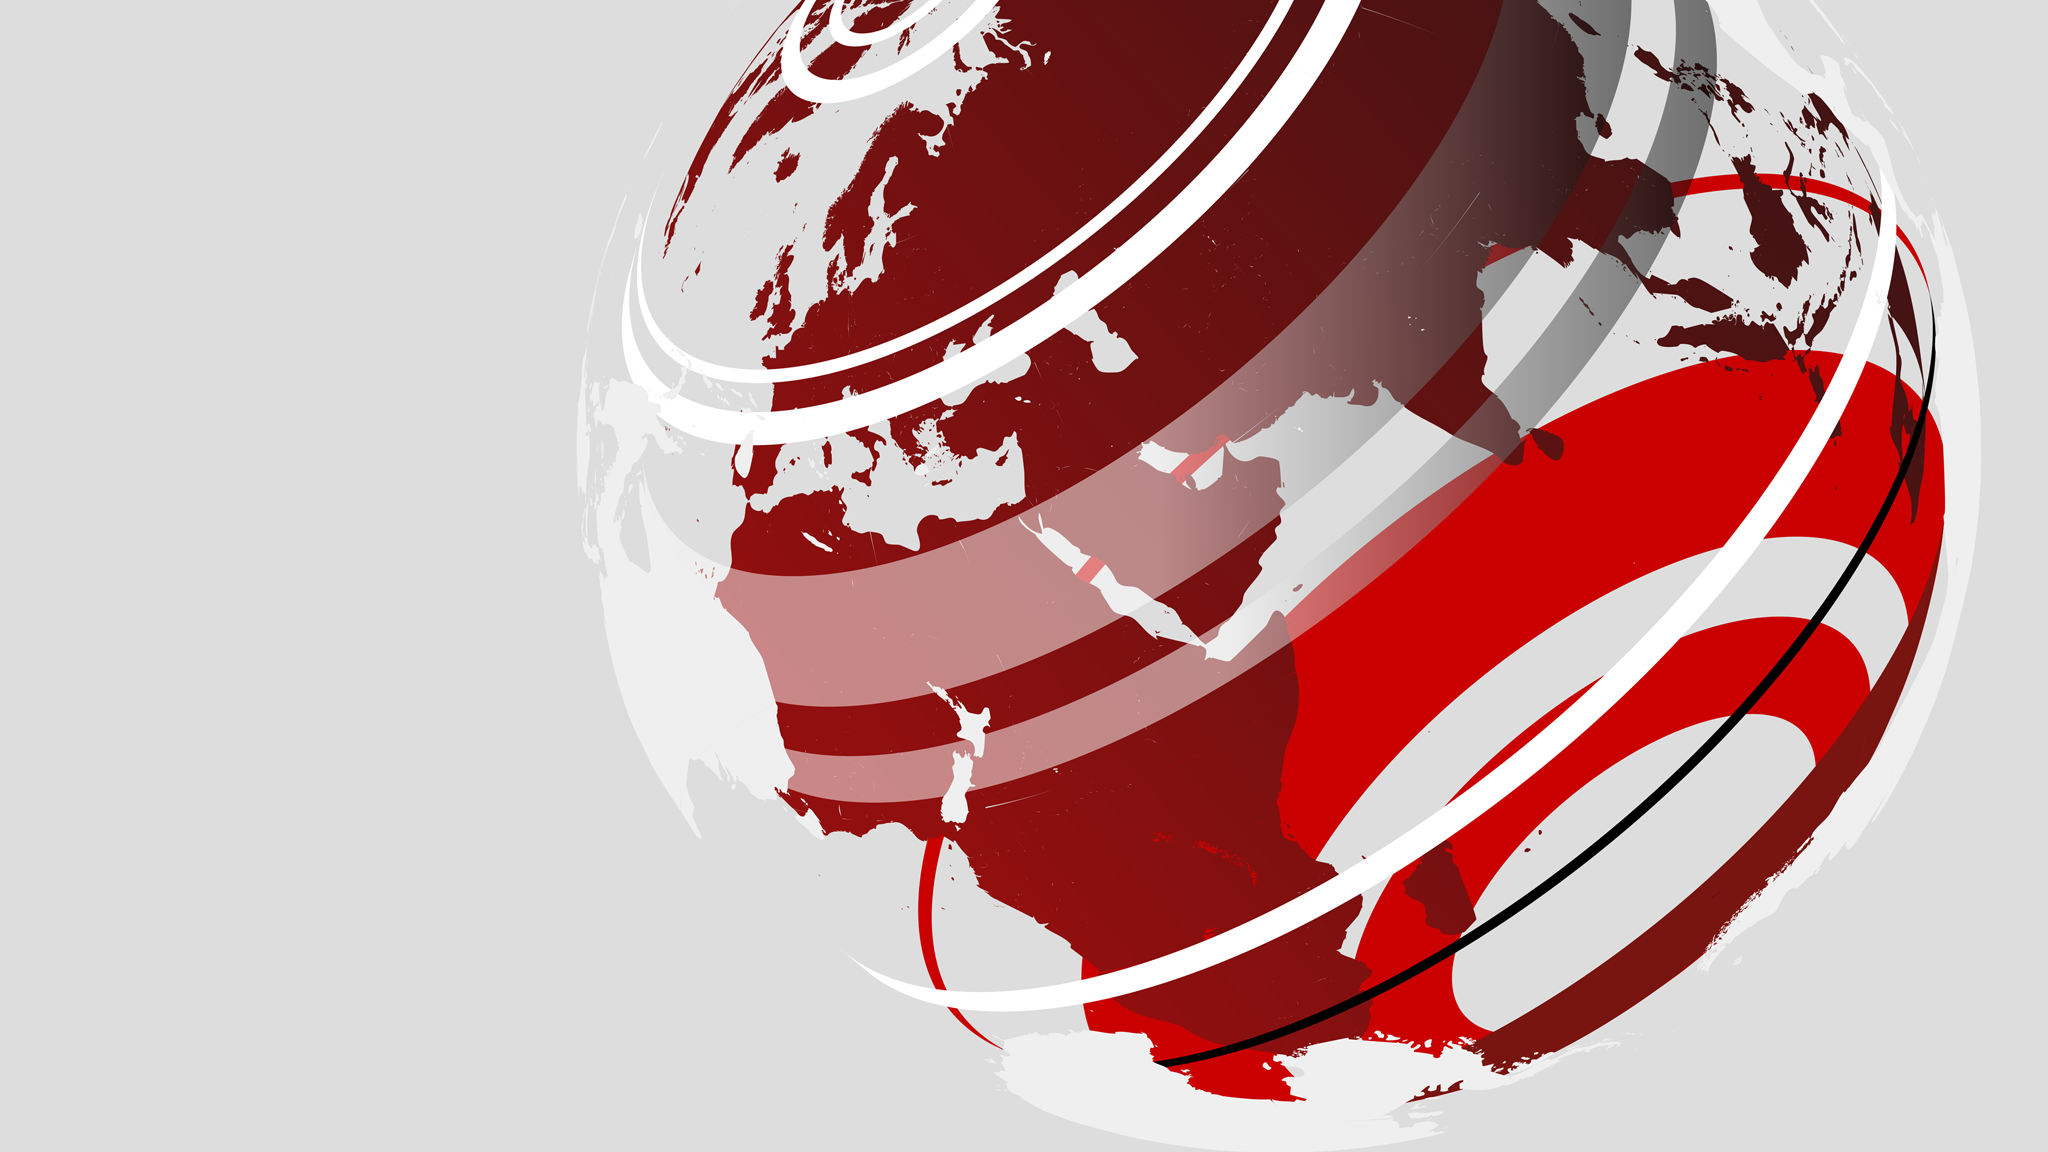 BBC News Channel